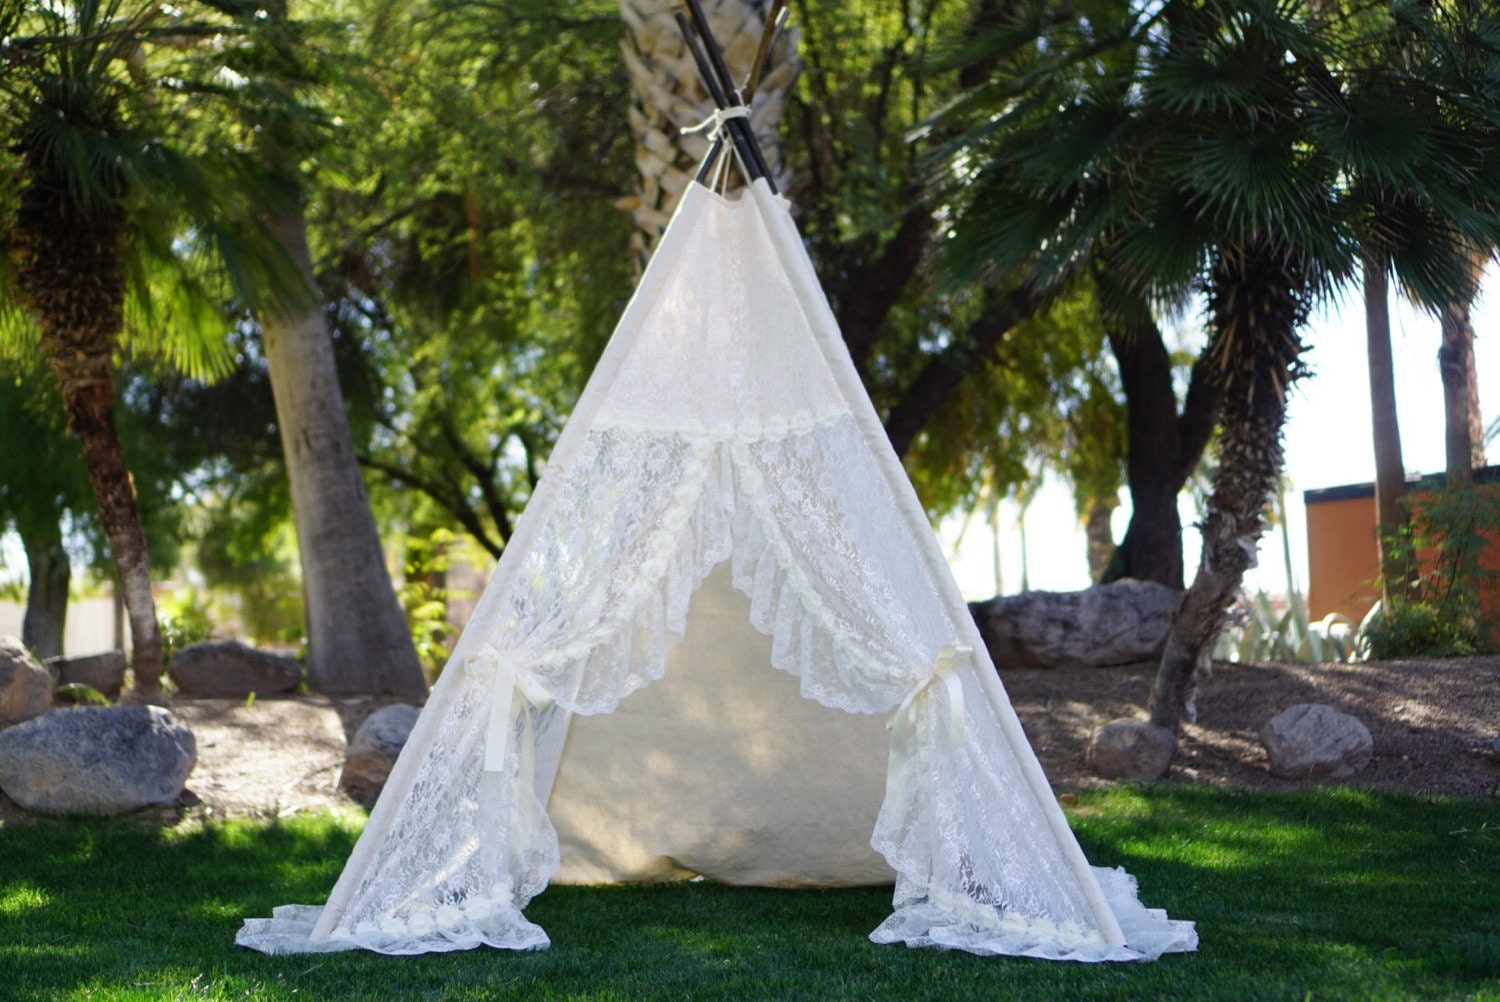 XL Eternity lace teepee 8ft kids Teepee large tipi Play tent wigwam or playhouse & XL Eternity lace teepee 8ft kids Teepee large tipi Play tent ...